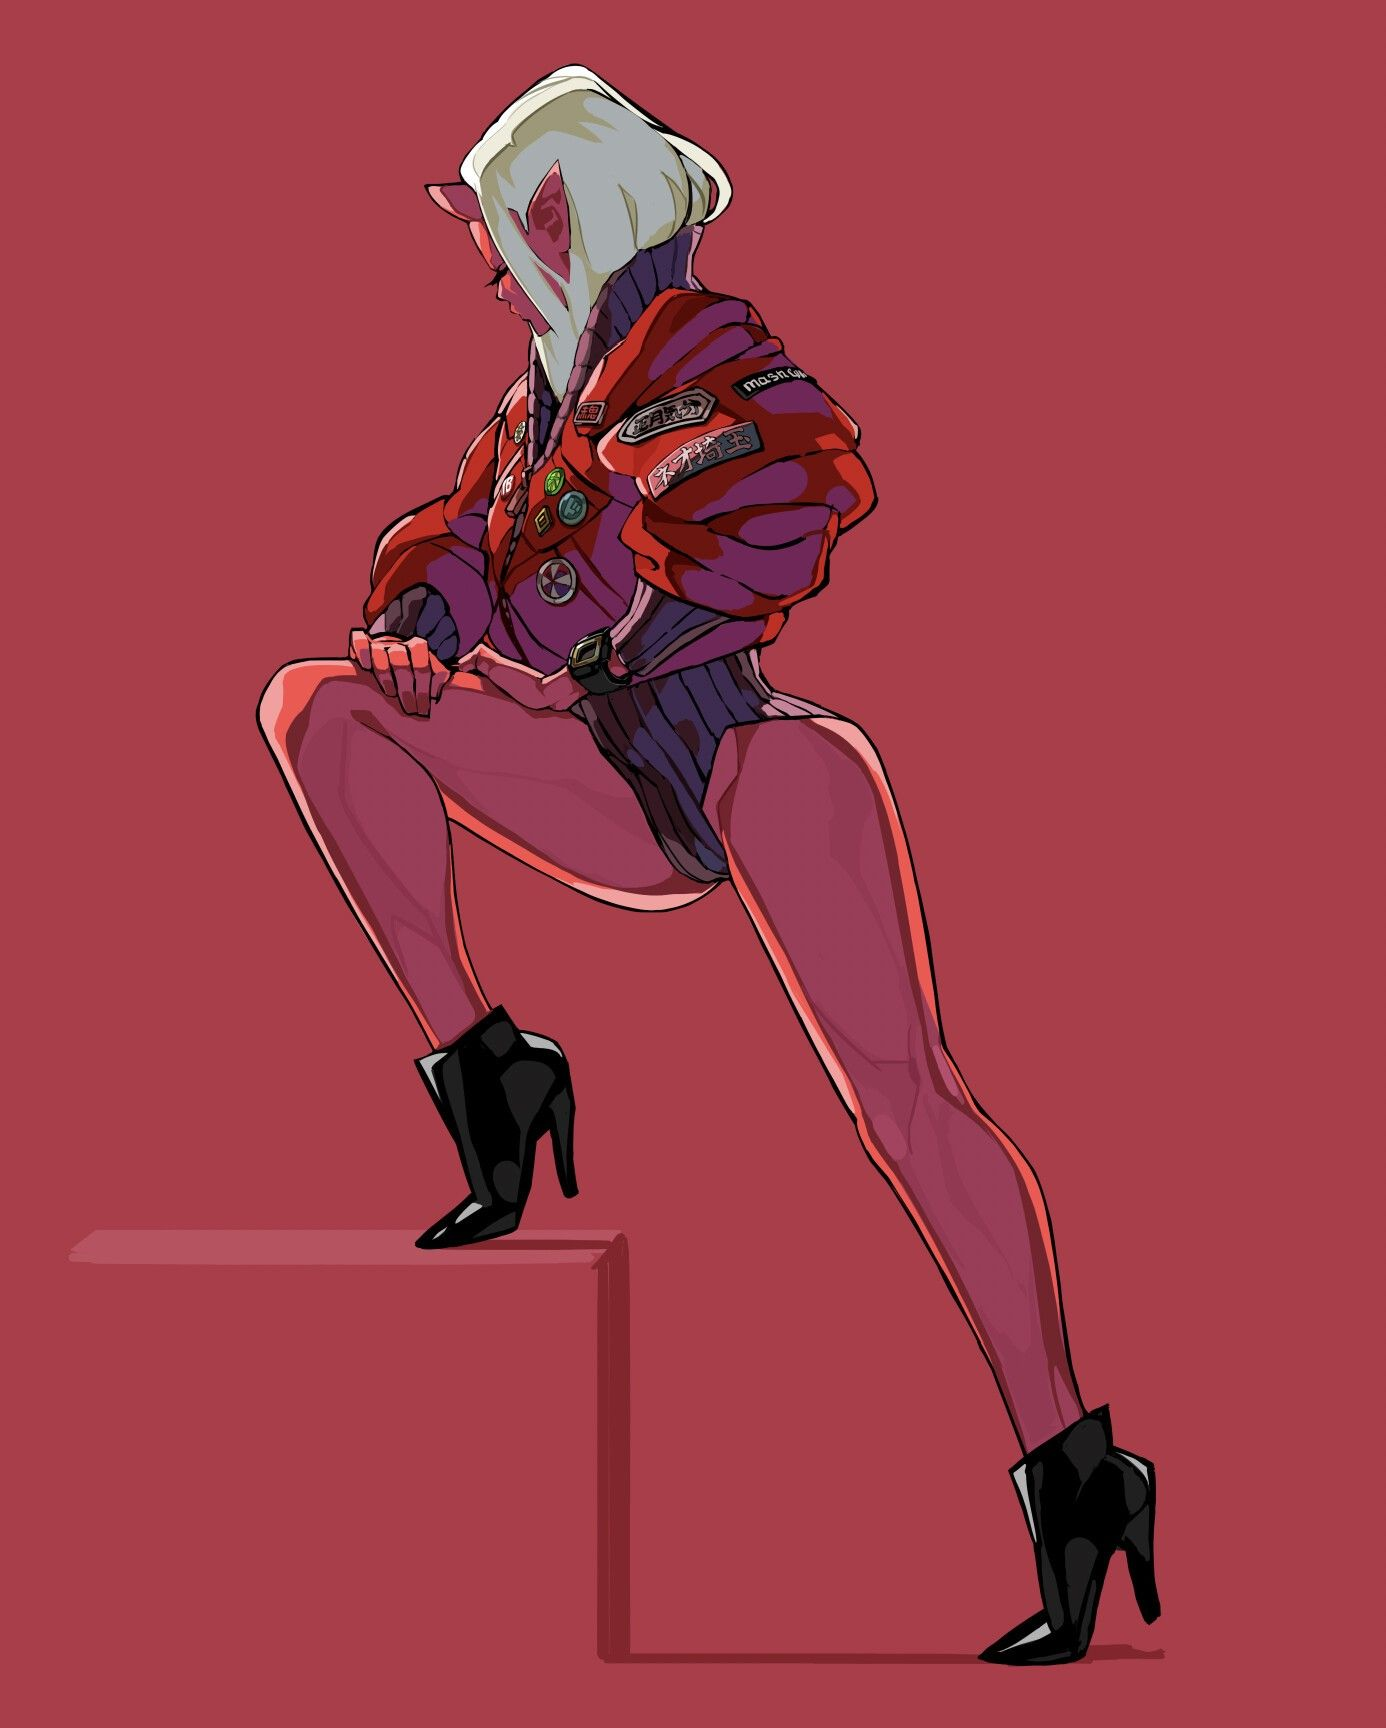 Pin By Spencer Barber On Anime Inspiration Character Art Character Design Character Design Inspiration